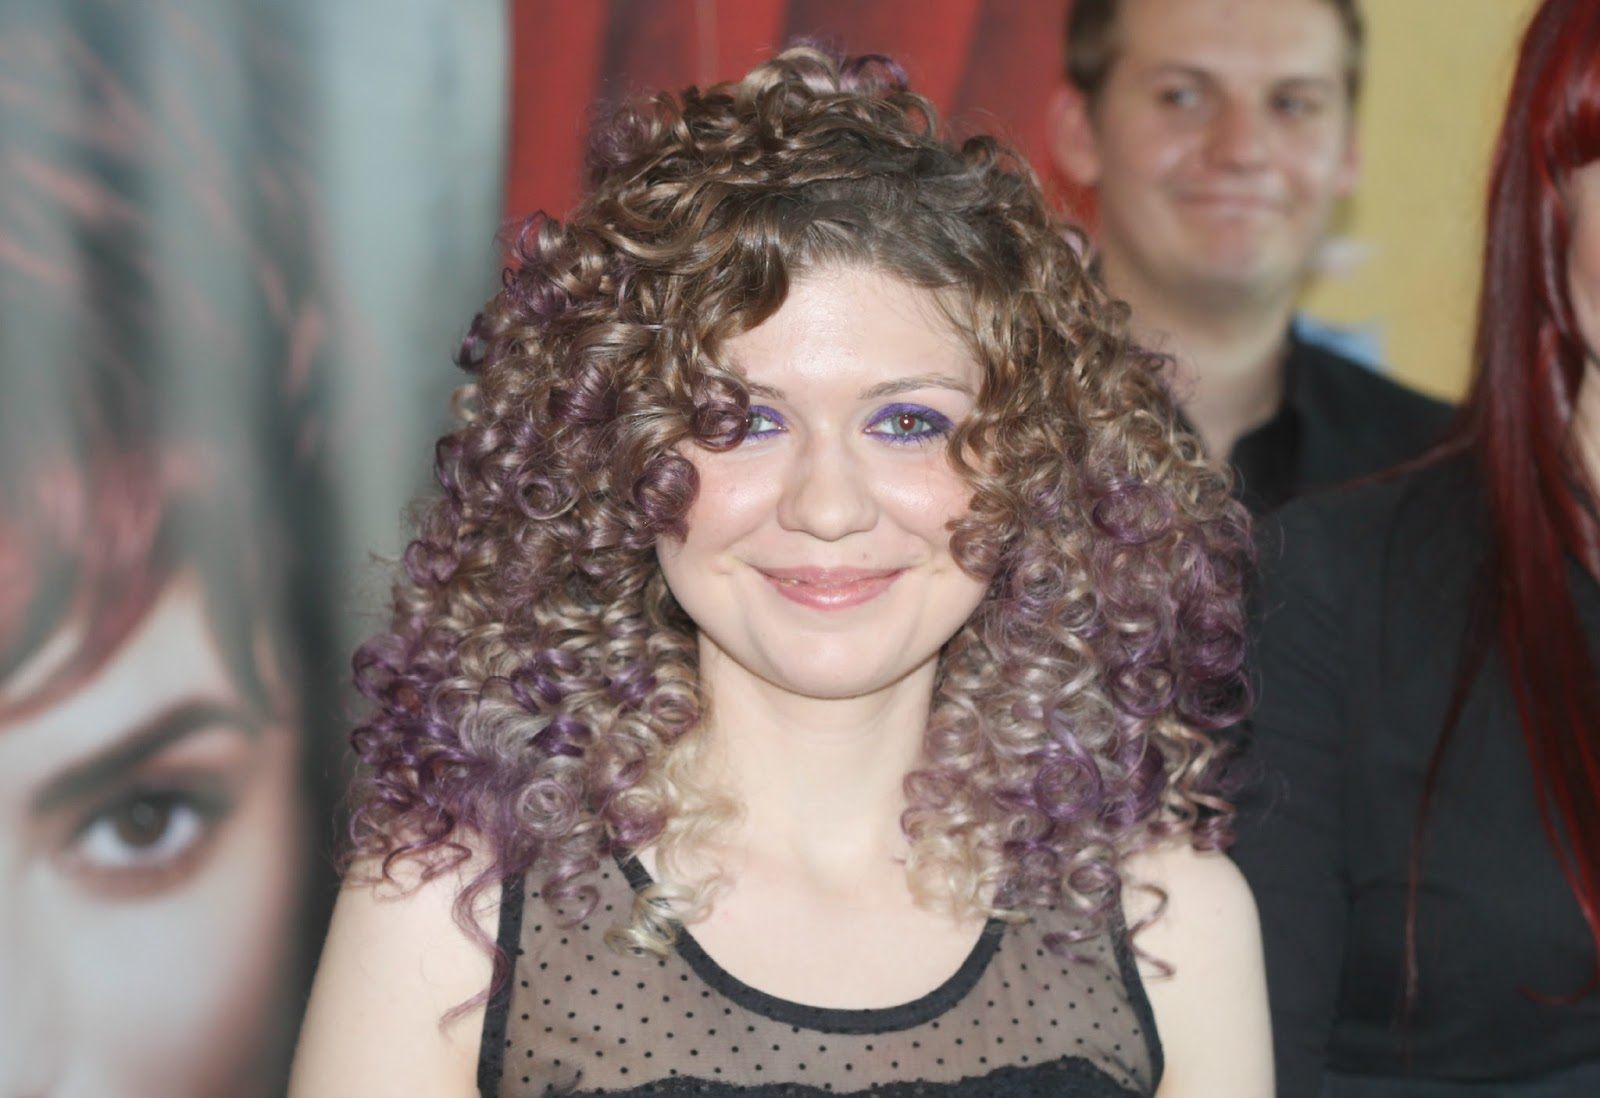 kirschbl te 39 s beauty lifestyle blog aus sterreich produktvorstellung event maybelline. Black Bedroom Furniture Sets. Home Design Ideas